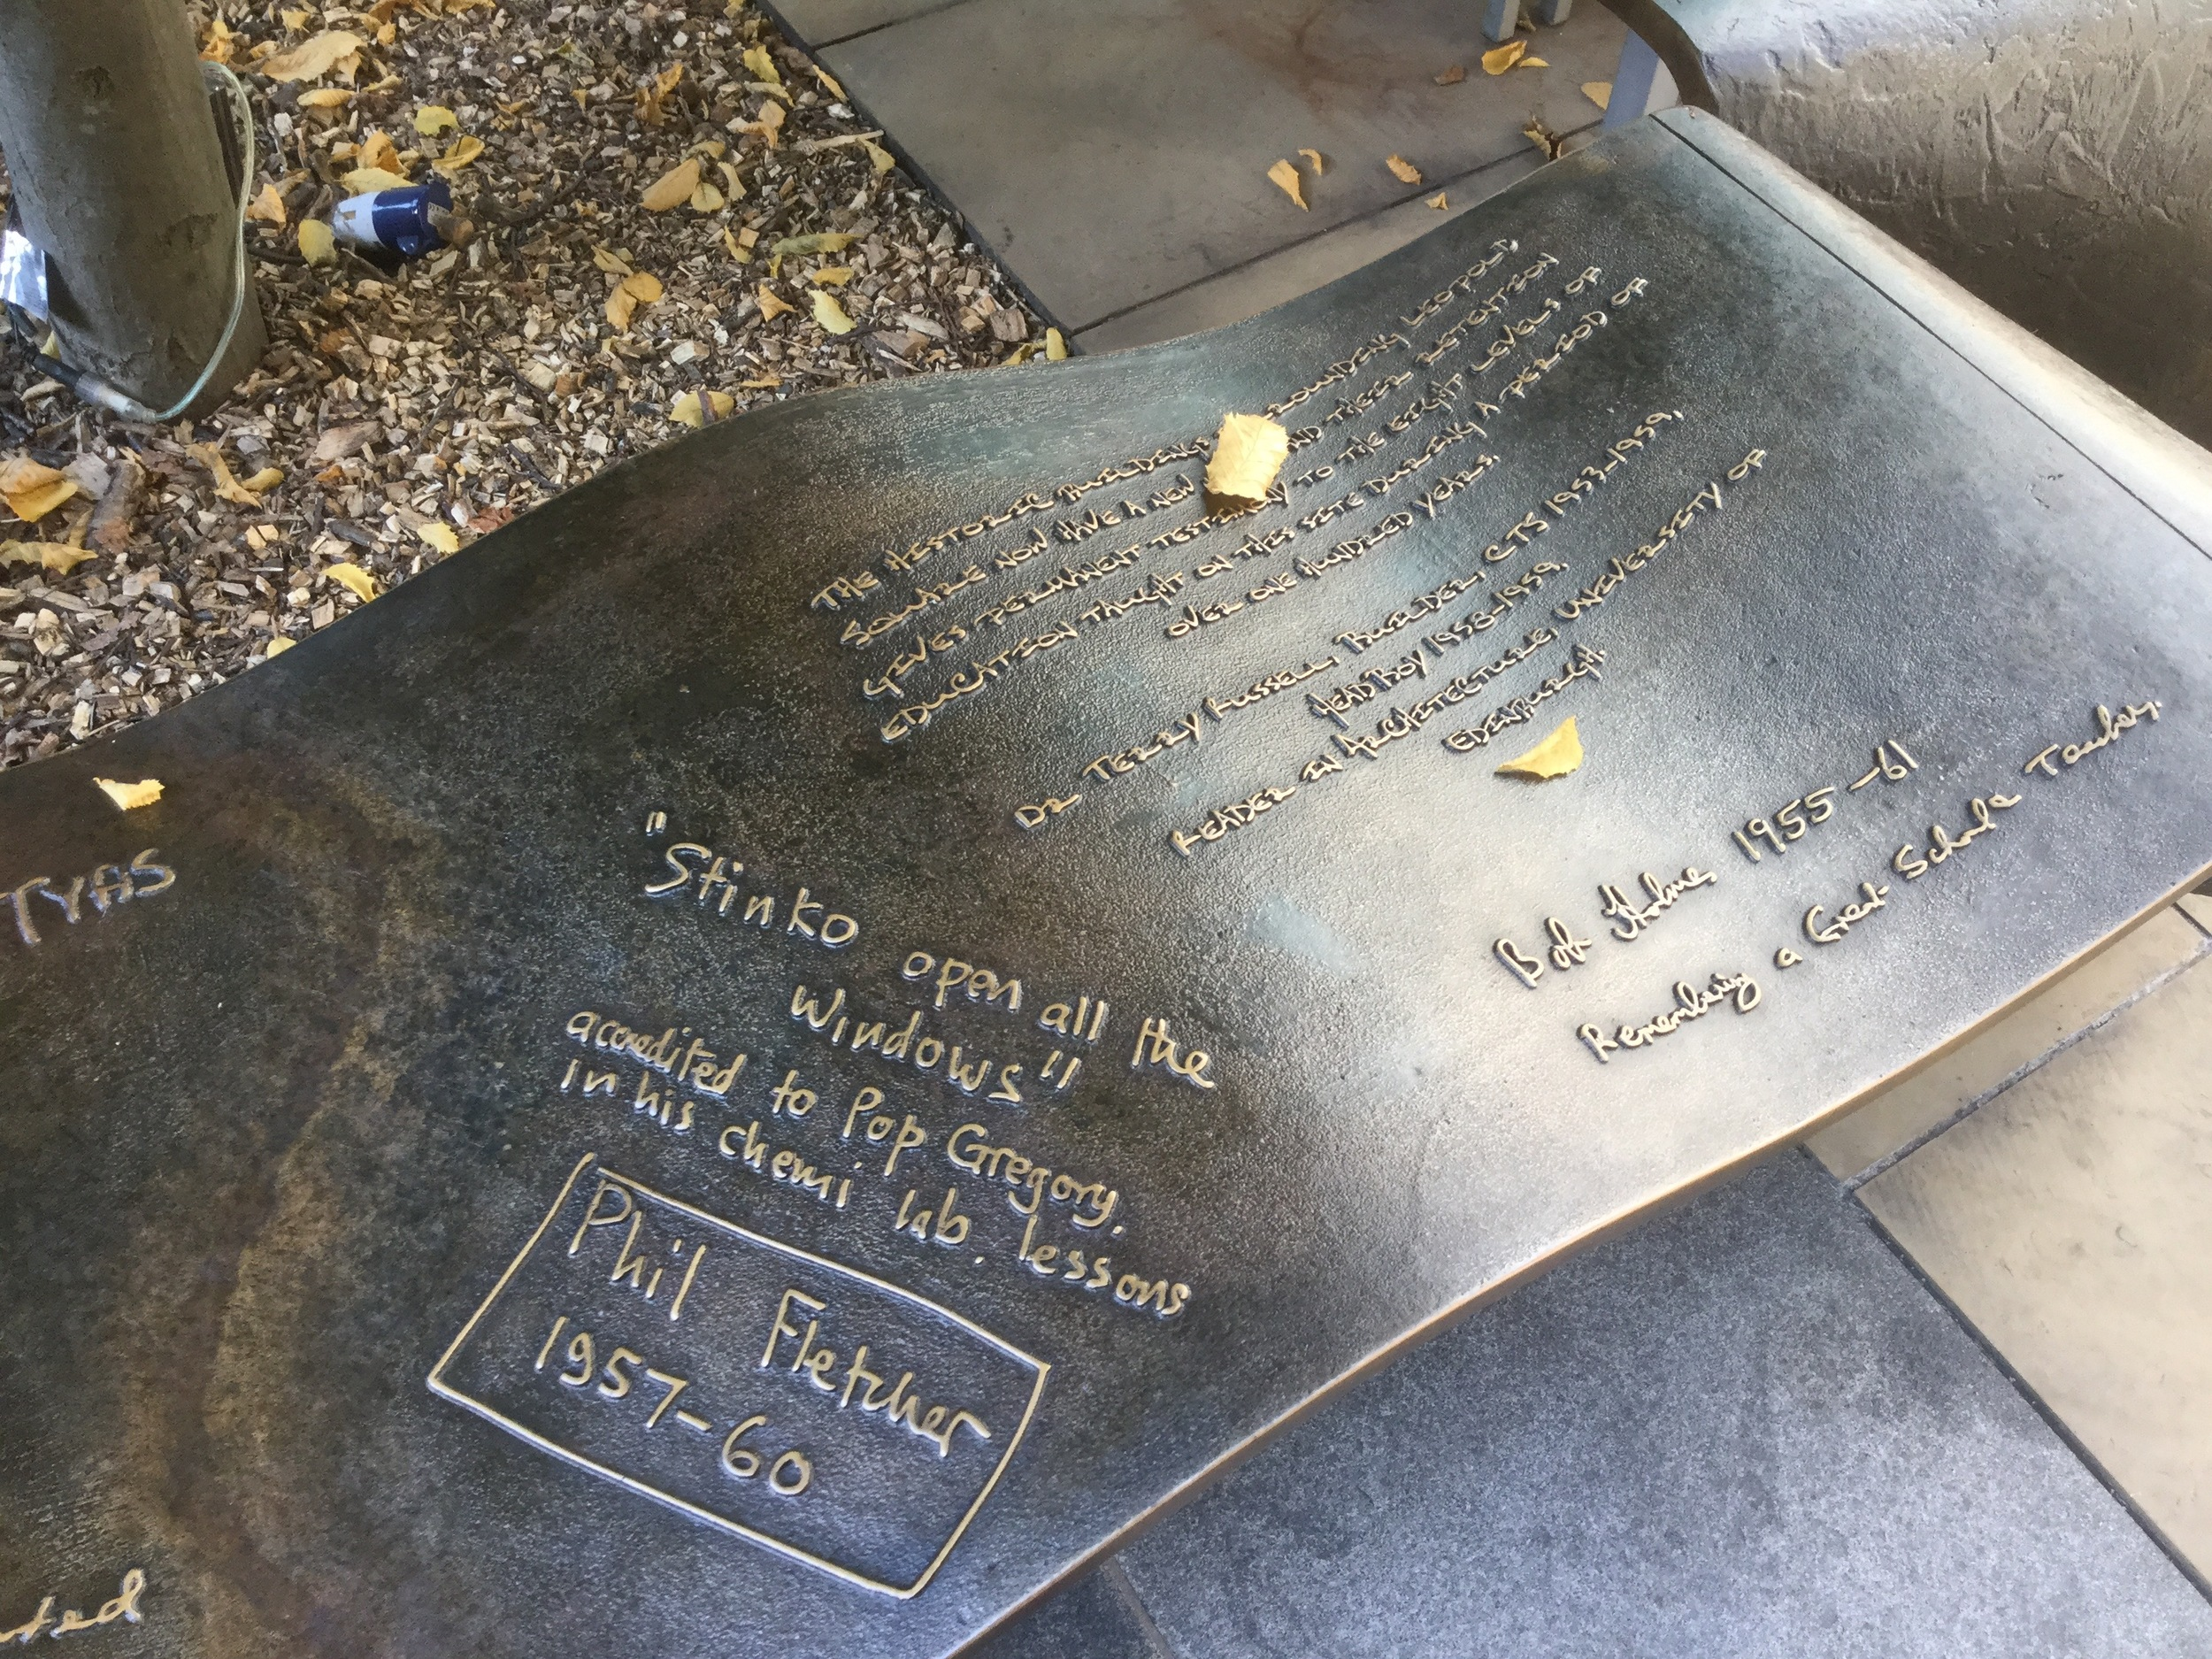 LEOPOLD SQAURE   Hand written statements or drawings modelled and cast into the bronze seating units.